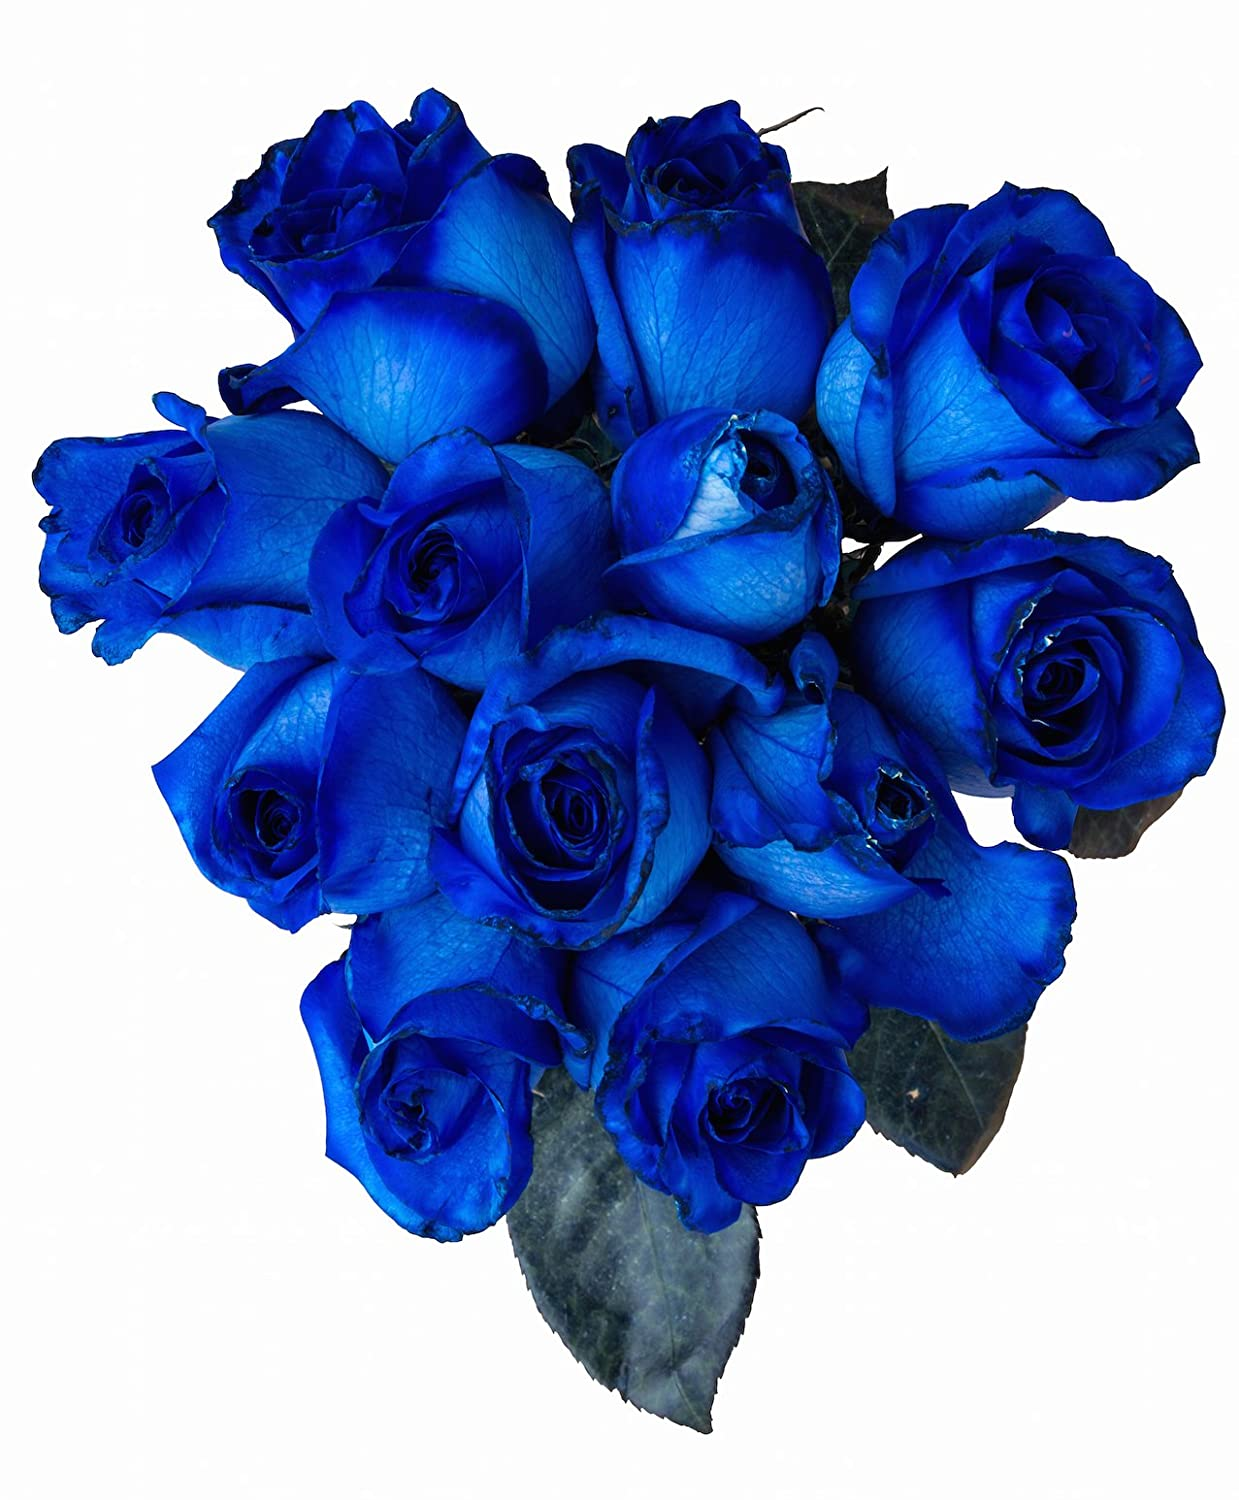 Amazon 24 Stems Fresh Cut Blue Roses From Flower Explosion